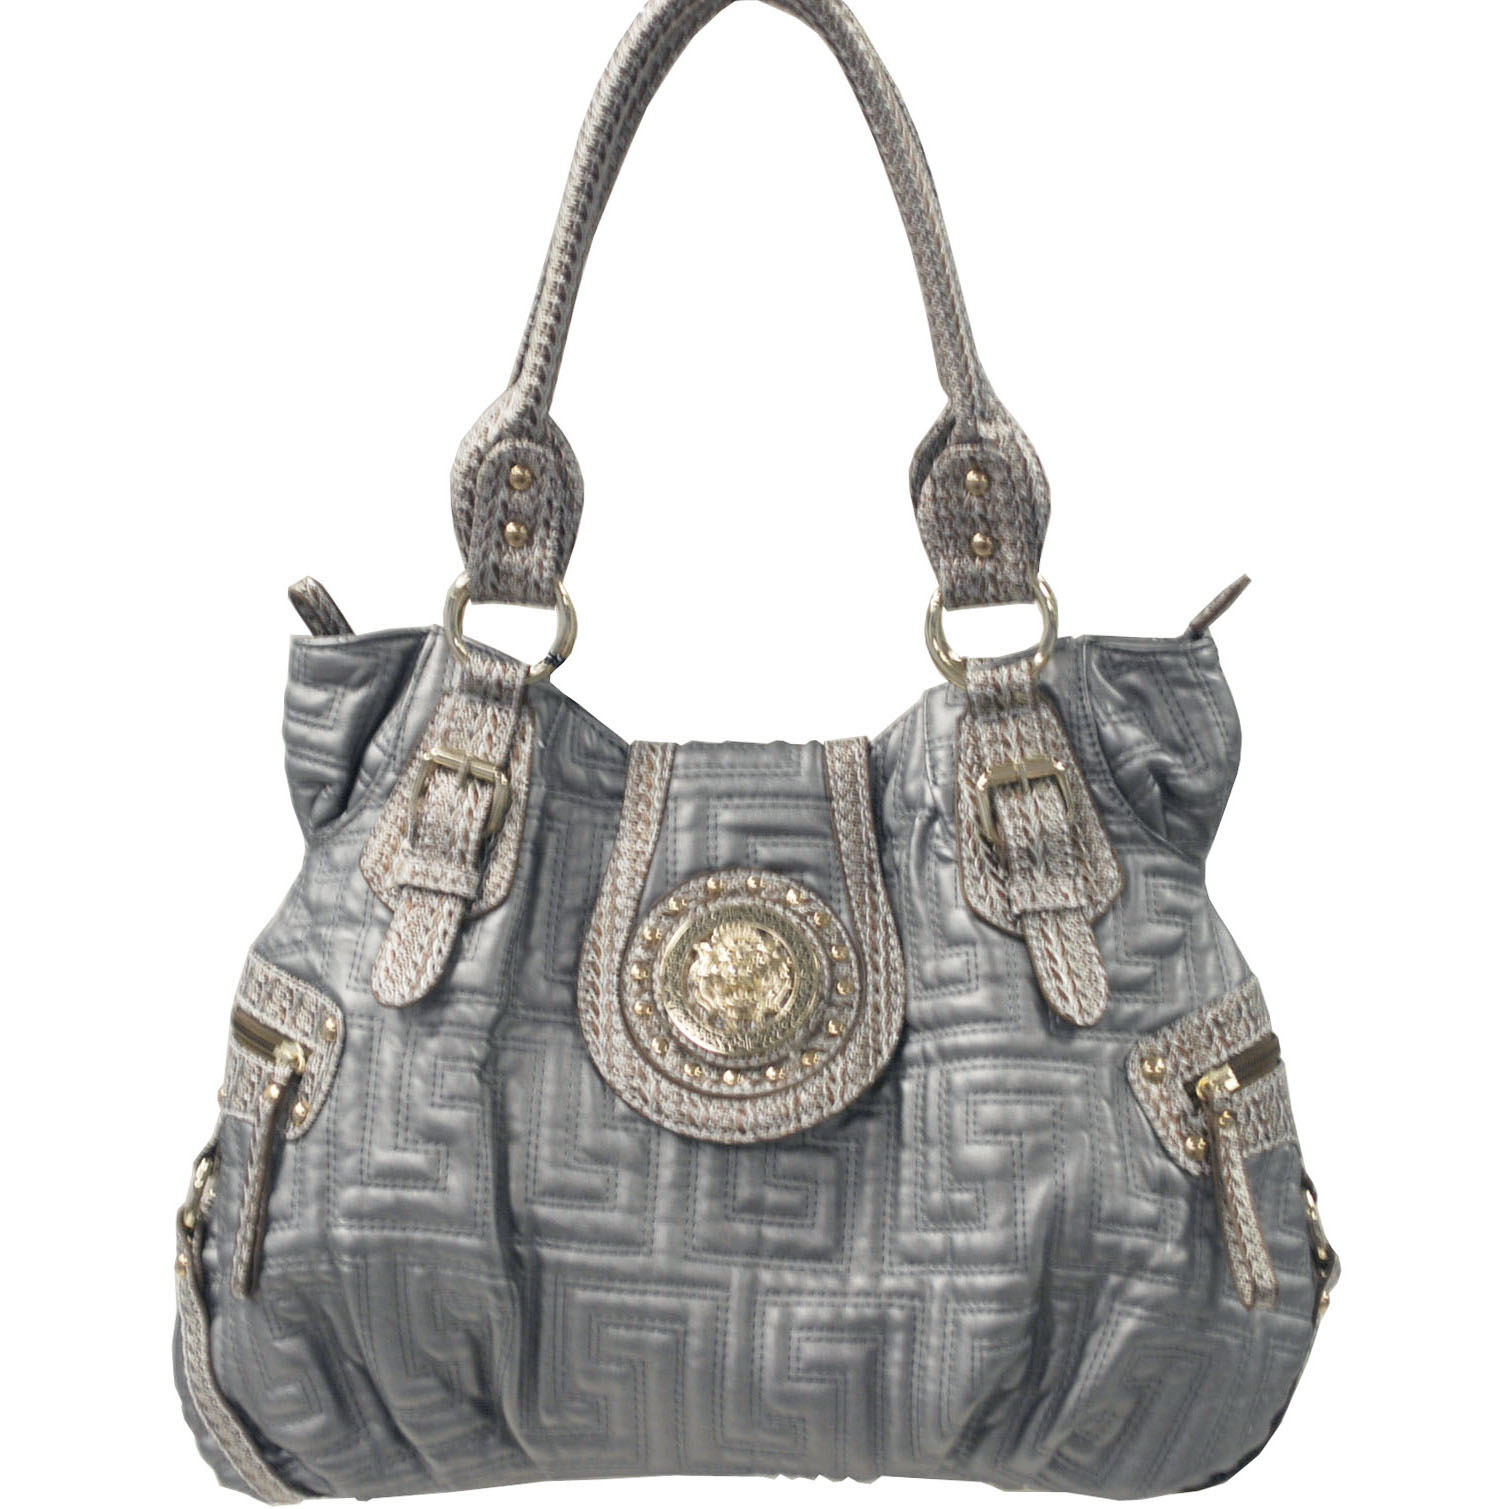 Designer inspired lion emblem accented quilted shoulder bag with side pockets